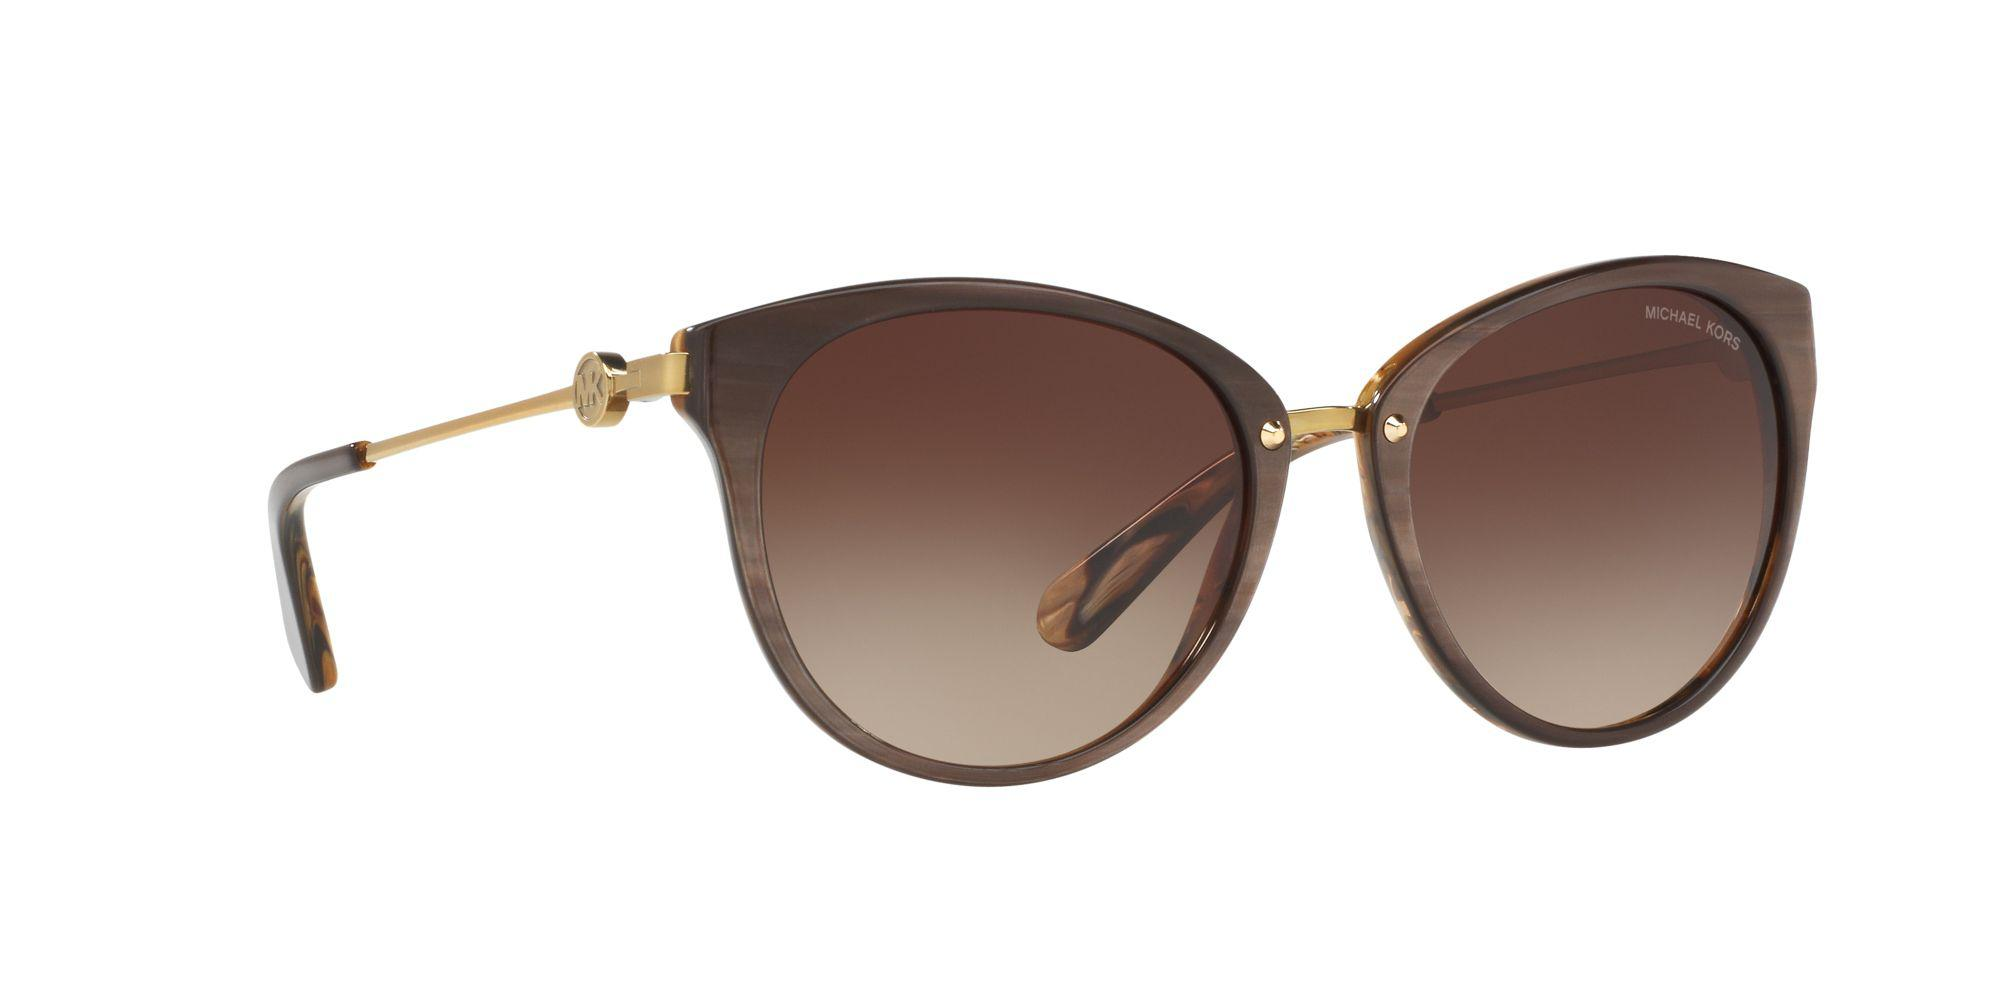 b596fbbe8ad5a Michael Kors - Brown Bronze Round  abela Iii  Sunglasses - Lyst. View  fullscreen